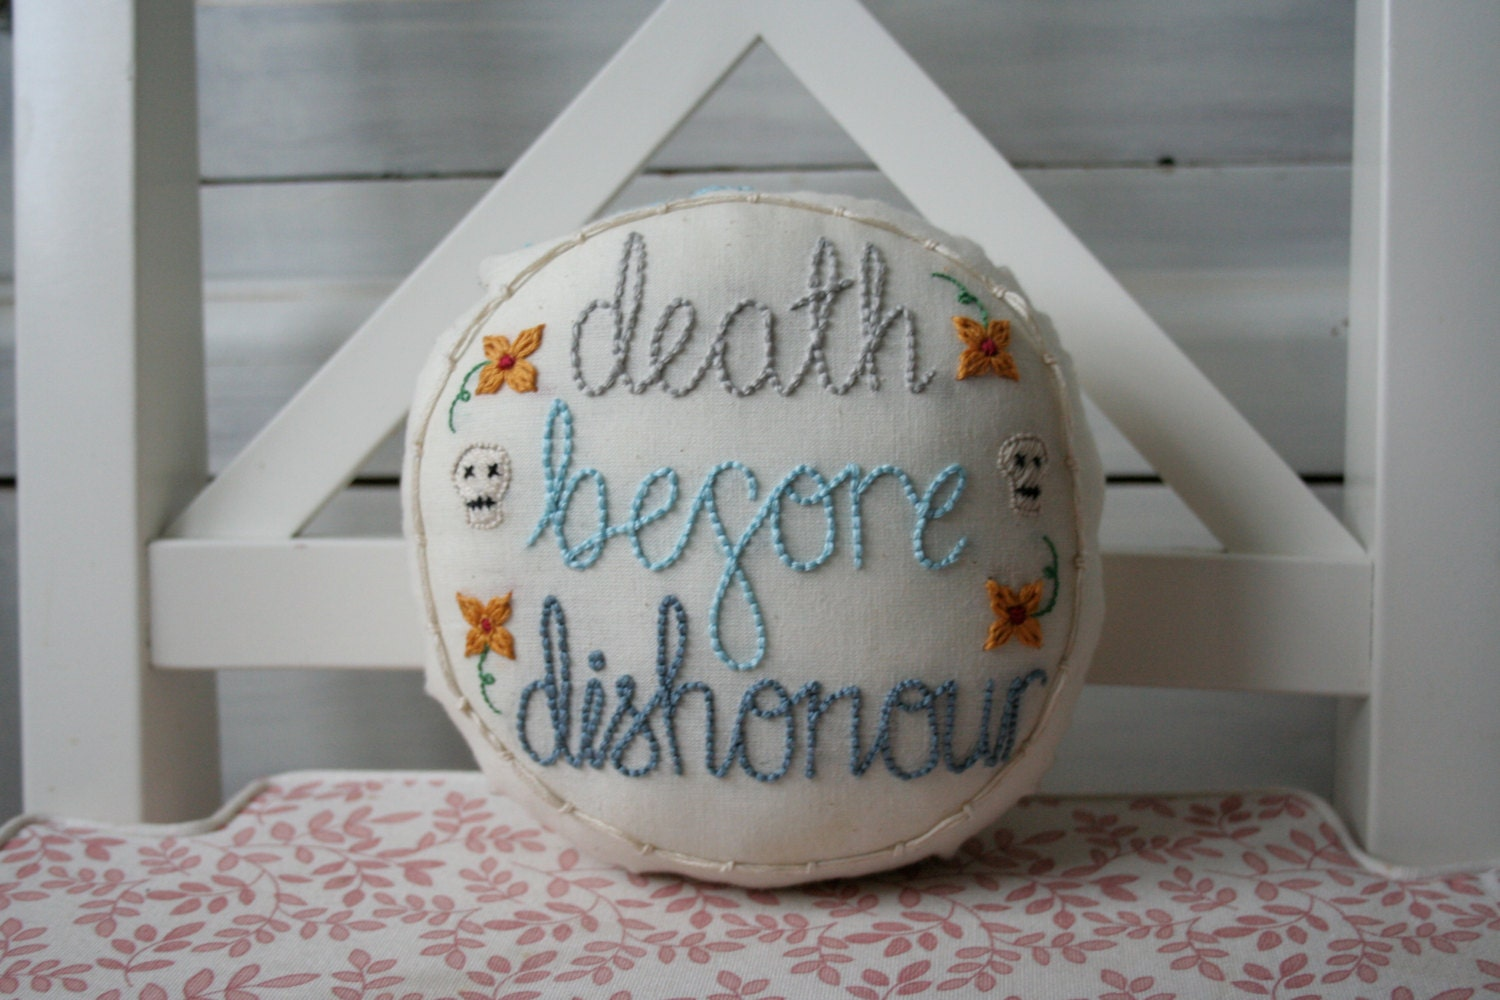 Profanityjane embroidered swear word pillow death before